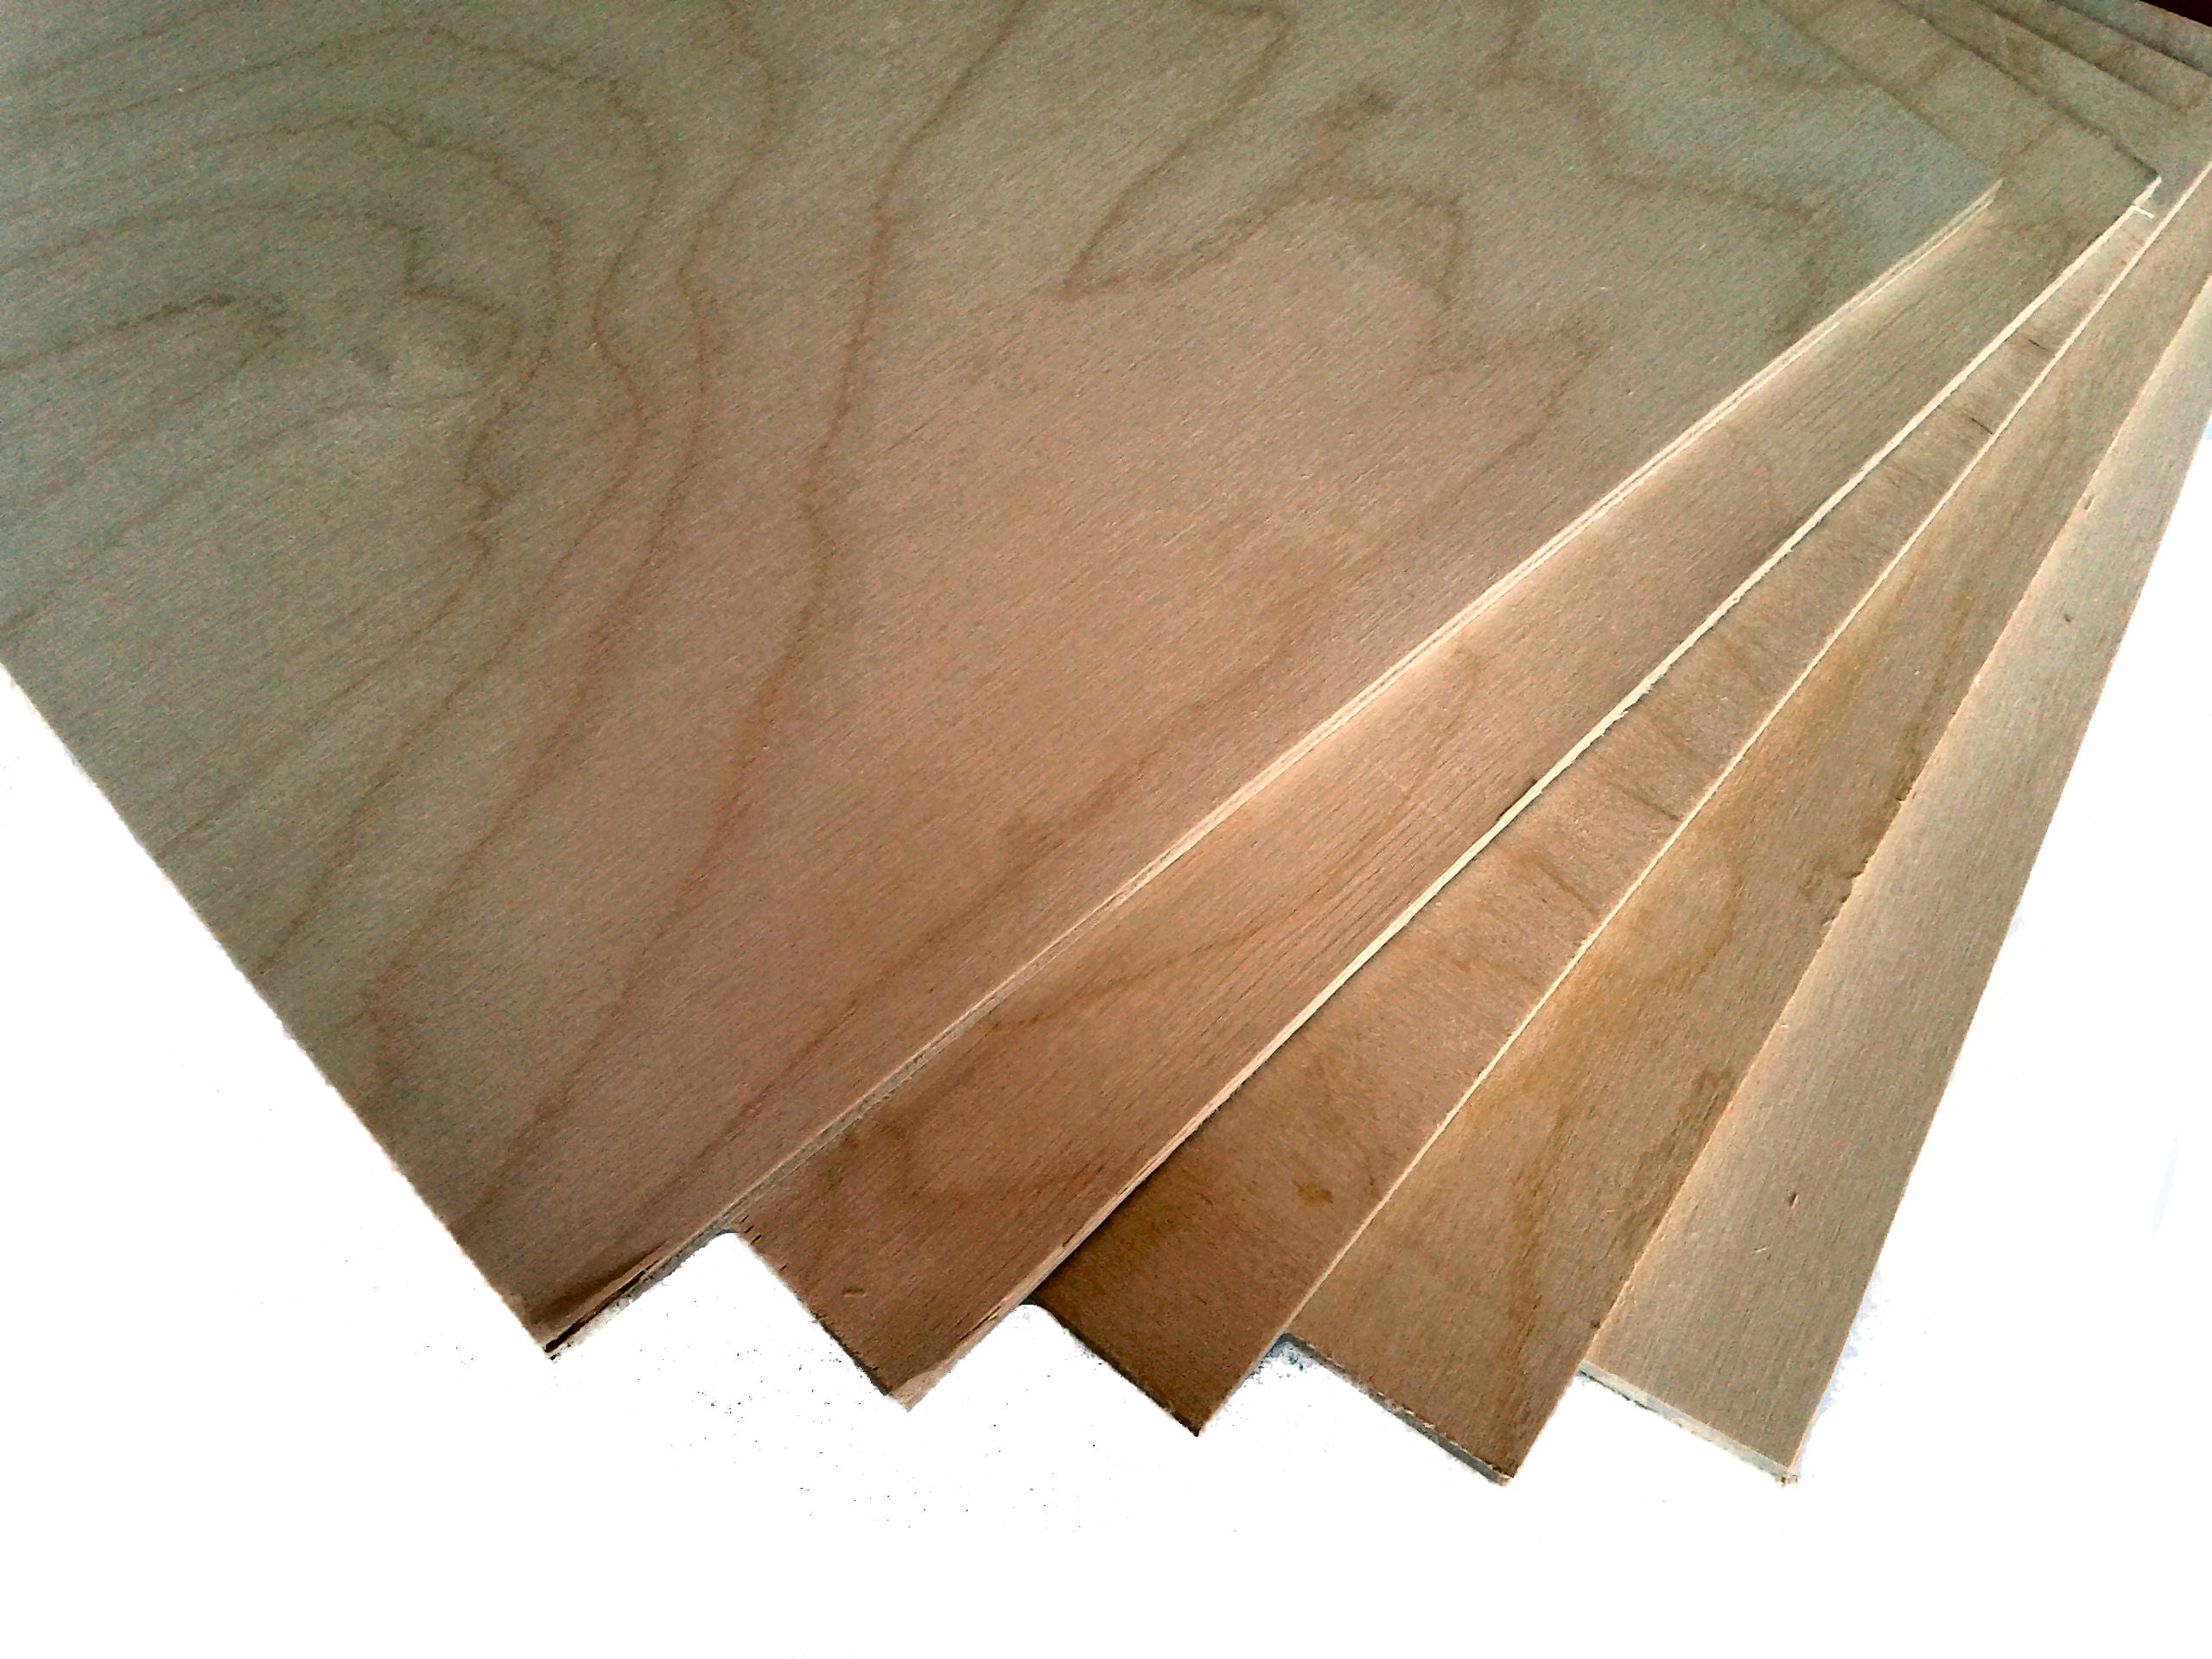 Quality Birch Plywood Off Cuts | Hobbies